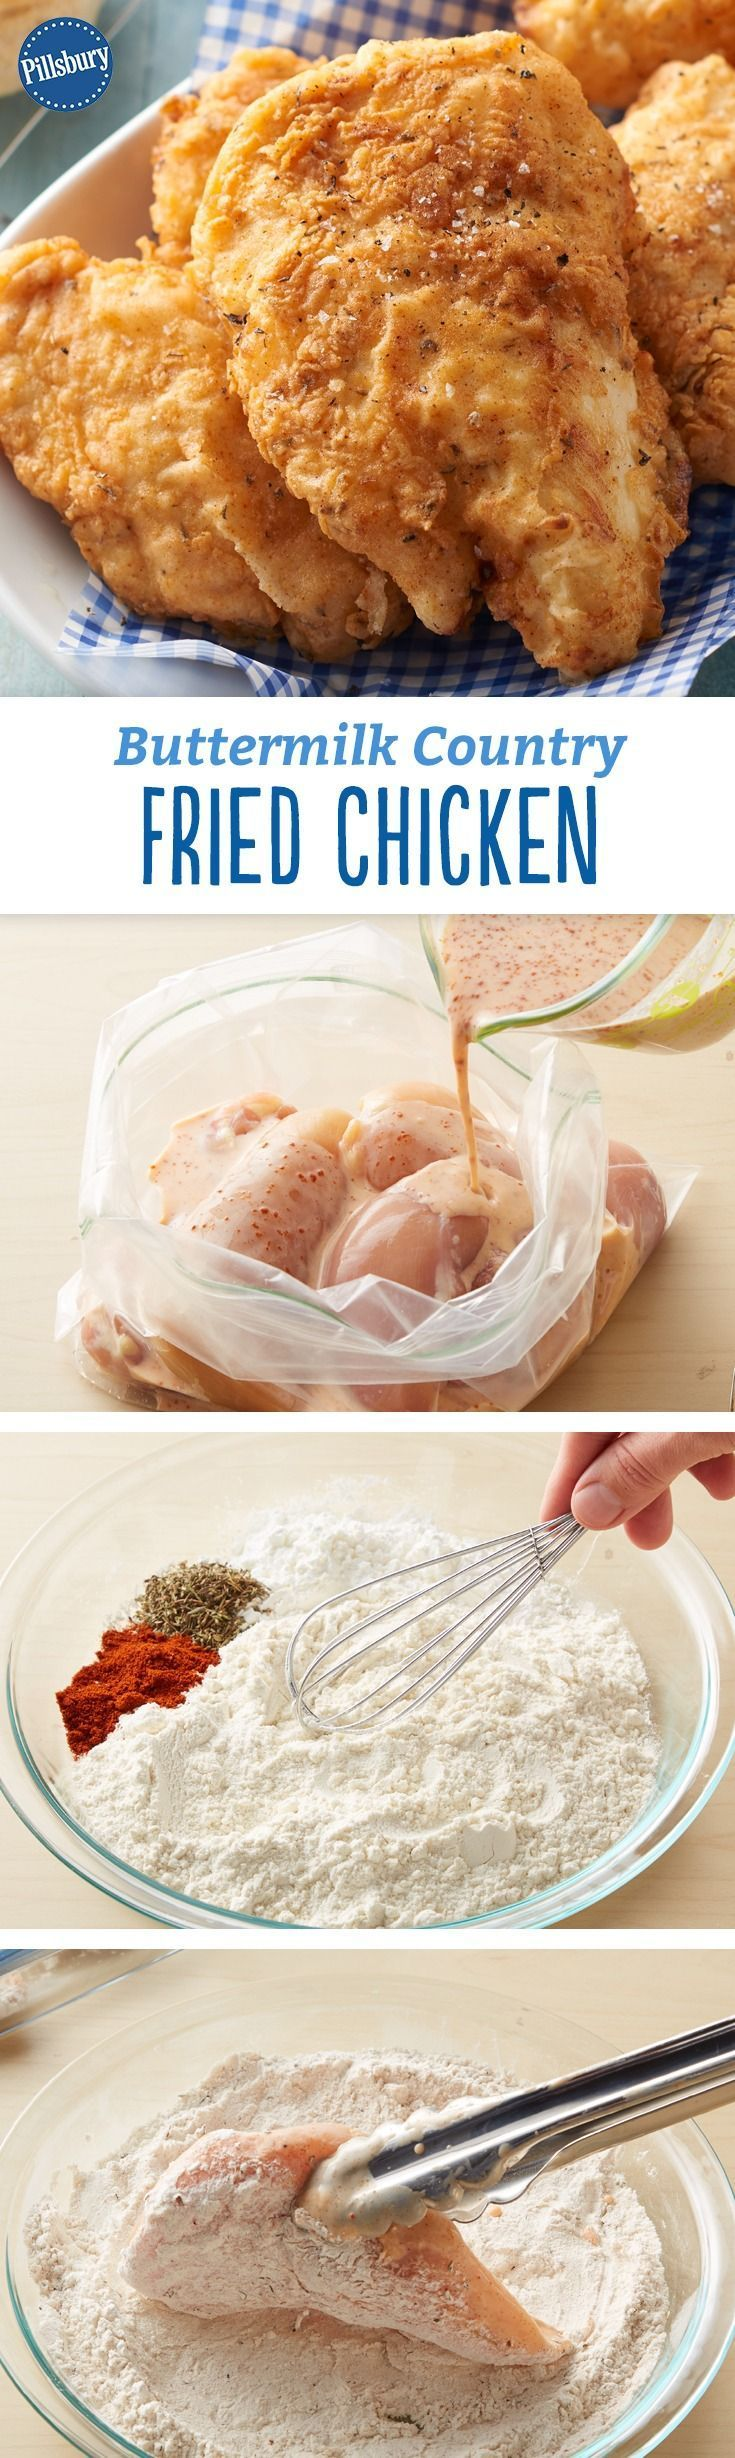 Buttermilk Country Fried Chicken Recipe - The secret to this juicy and tender fried chicken lies in the simple buttermilk marinade. The crisp crust has a delicious hint of thyme.  Be featured in Model Citizen App, Magazine and Blog.  www.modelcitizenapp.com #chickenfoodrecipes